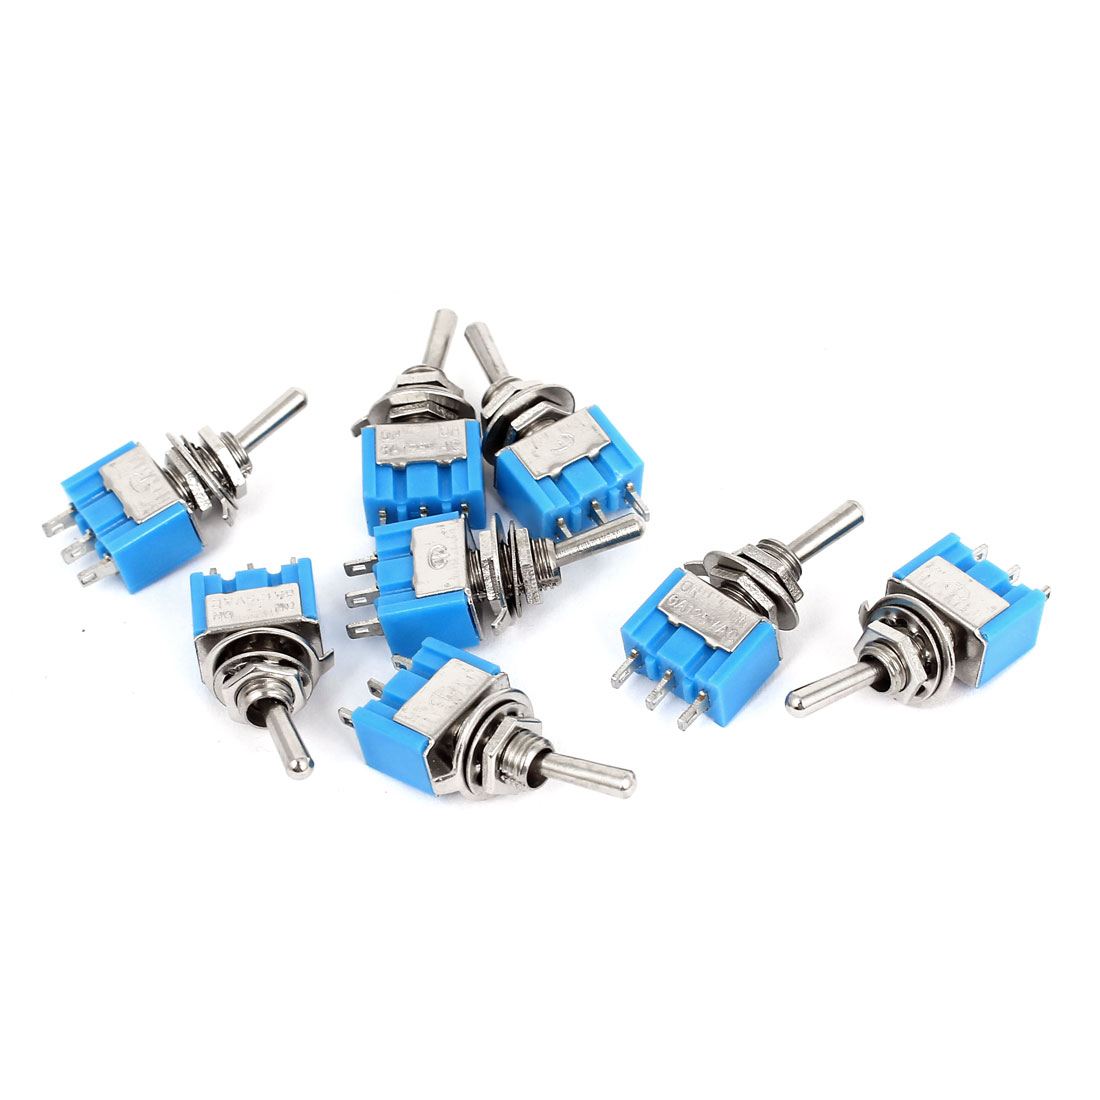 8 Pcs AC 125V 6A Latching 3 Pin SPDT 2 Position ON-OFF Toggle Switch